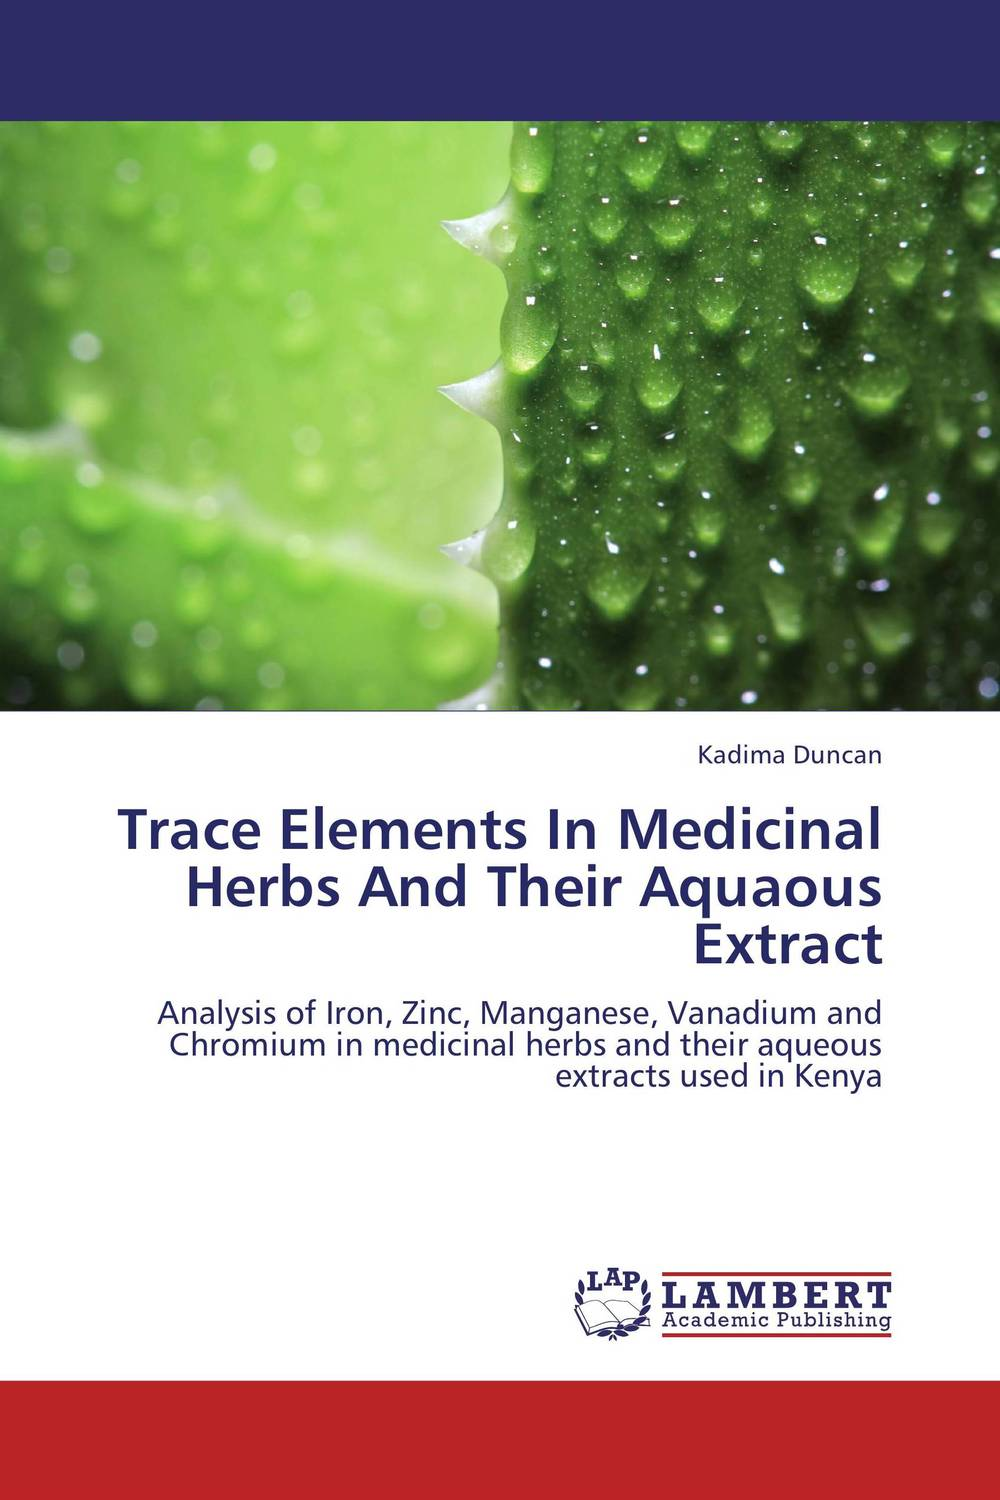 Trace Elements In Medicinal Herbs And Their Aquaous Extract 1% coal tar herbs extract in the treatment of seborrheic dermatitis dandruff psoriasis itching shampoo wq016